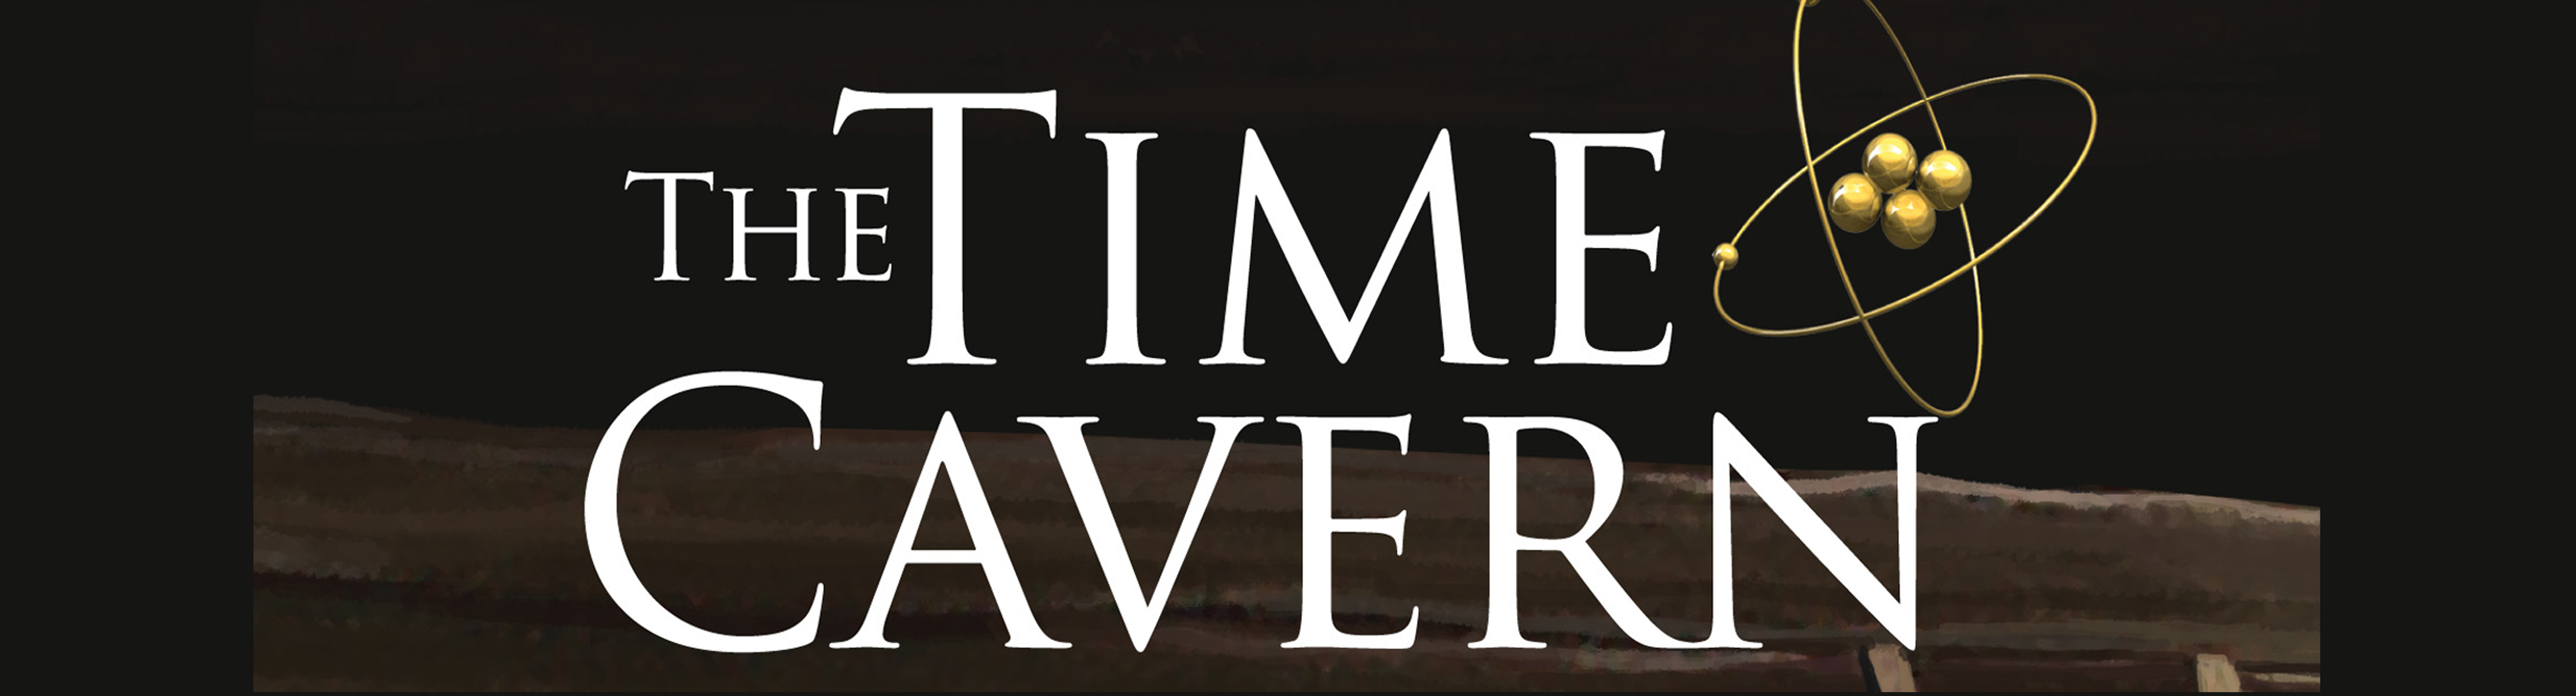 The Time Cavern Home